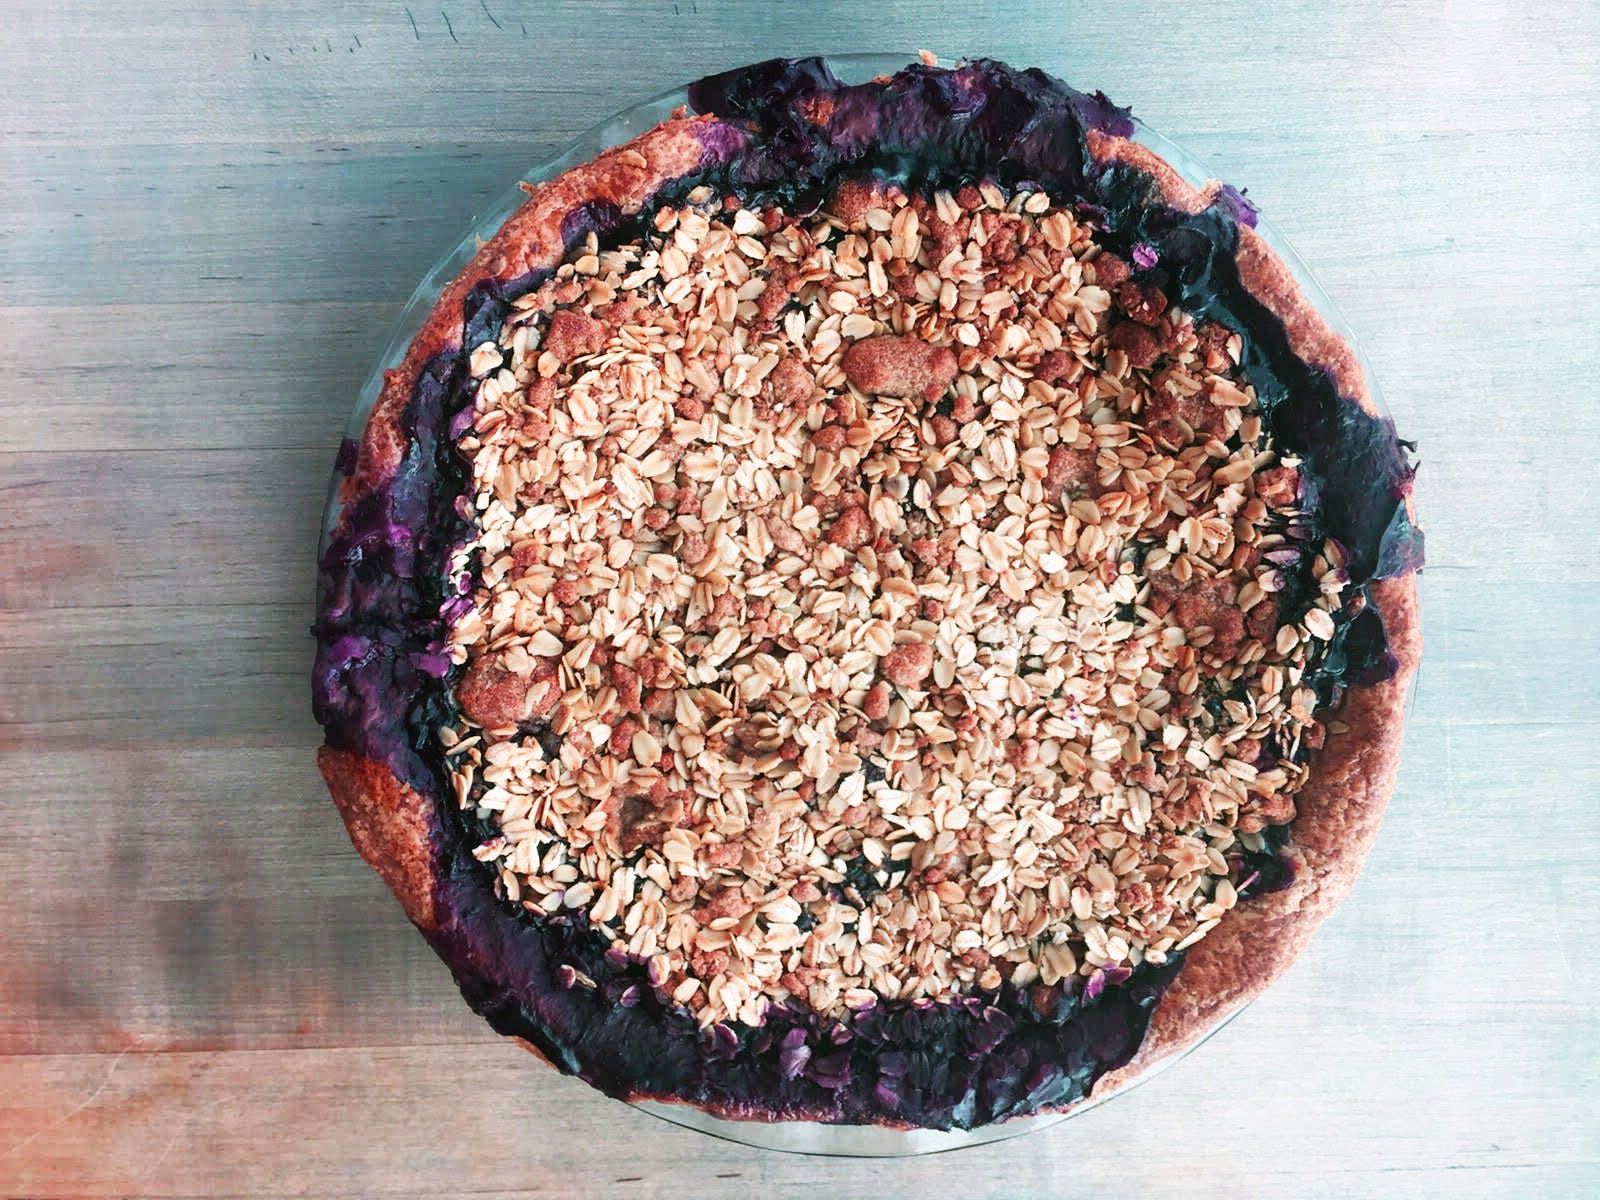 Blueberry Pie at Love   Salt photoshopped